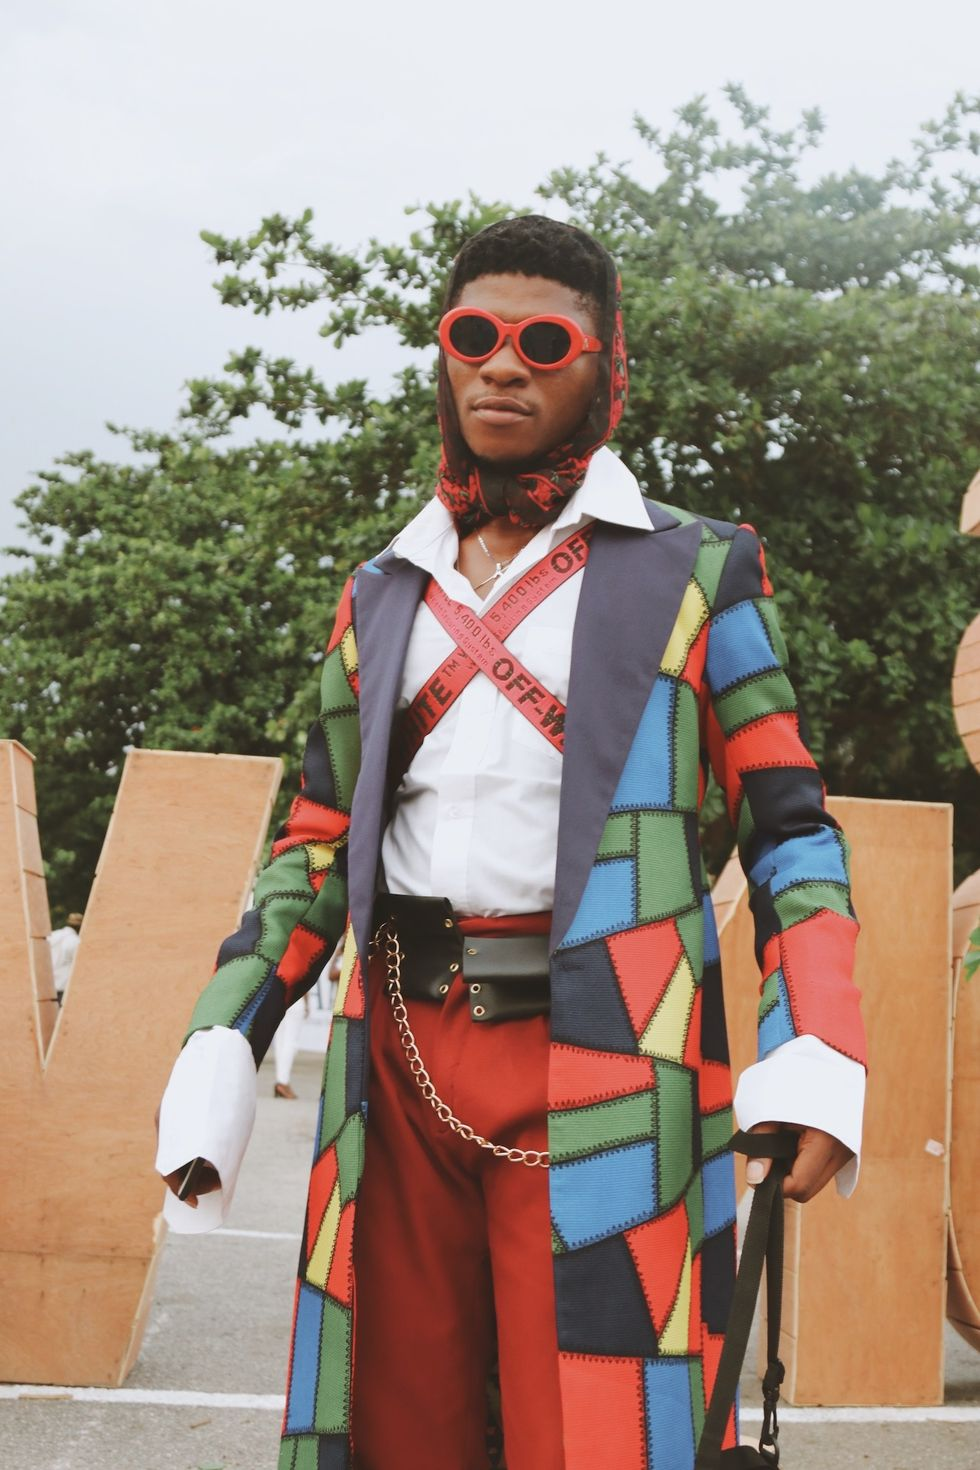 Nigerian man wearing colorful coat and red sunglasses.